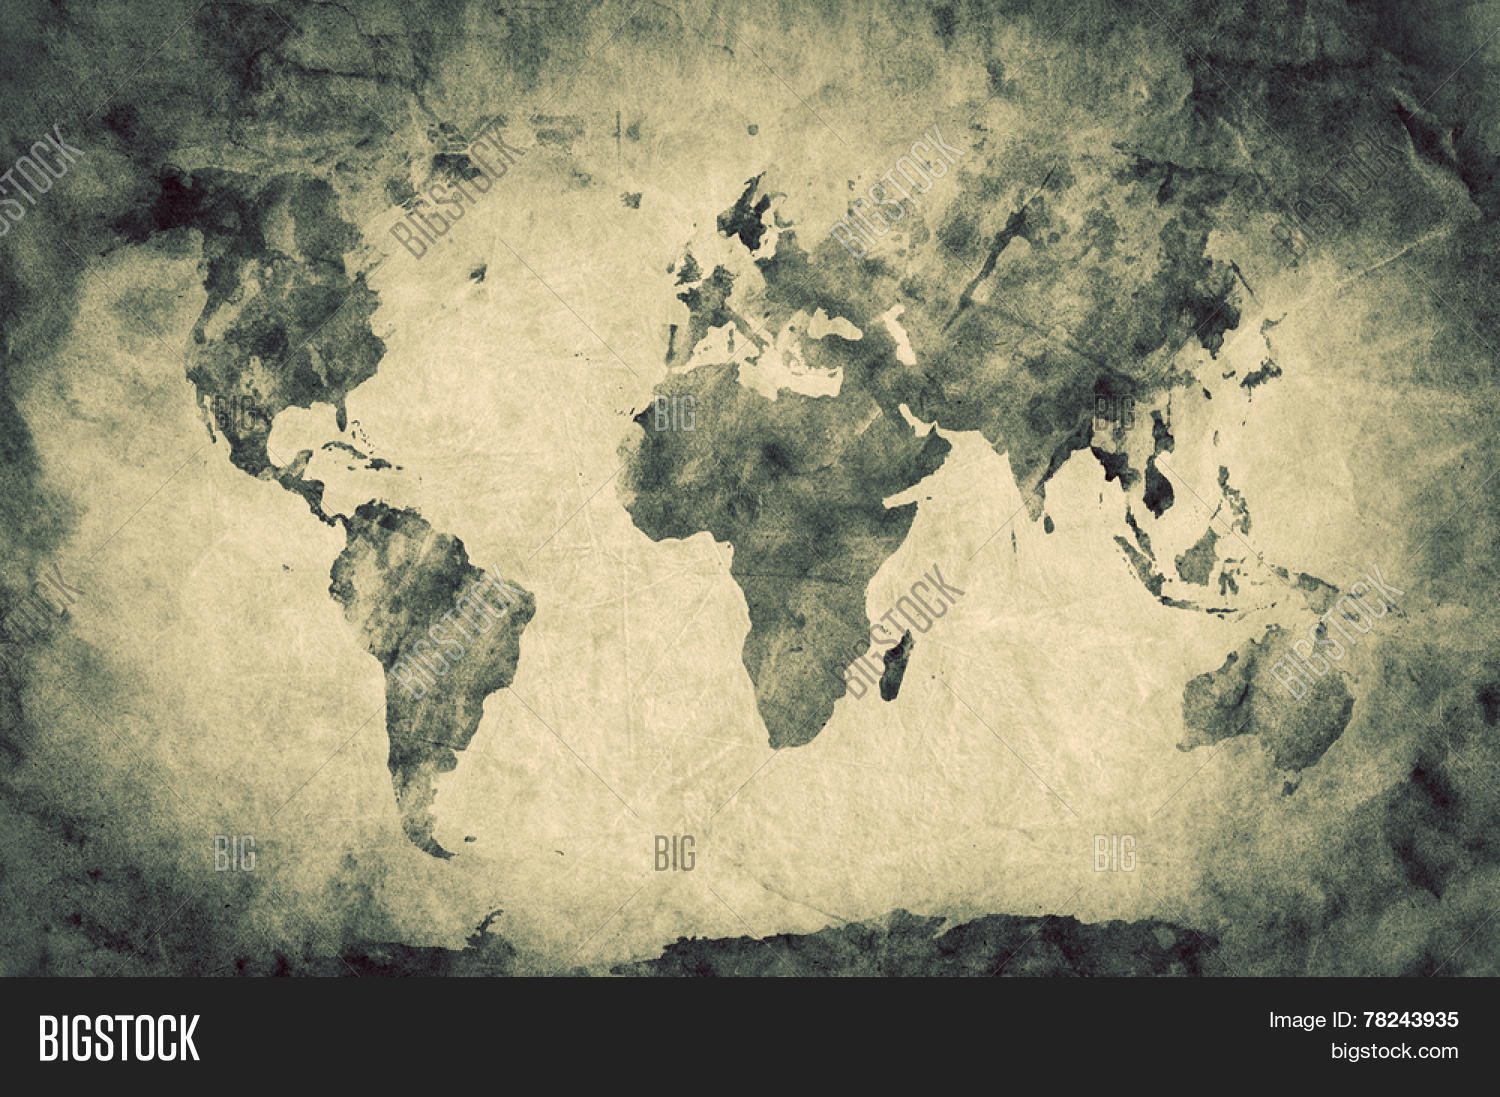 Ancient old world map image photo free trial bigstock ancient old world map pencil sketch grunge vintage background texture sepia gumiabroncs Gallery